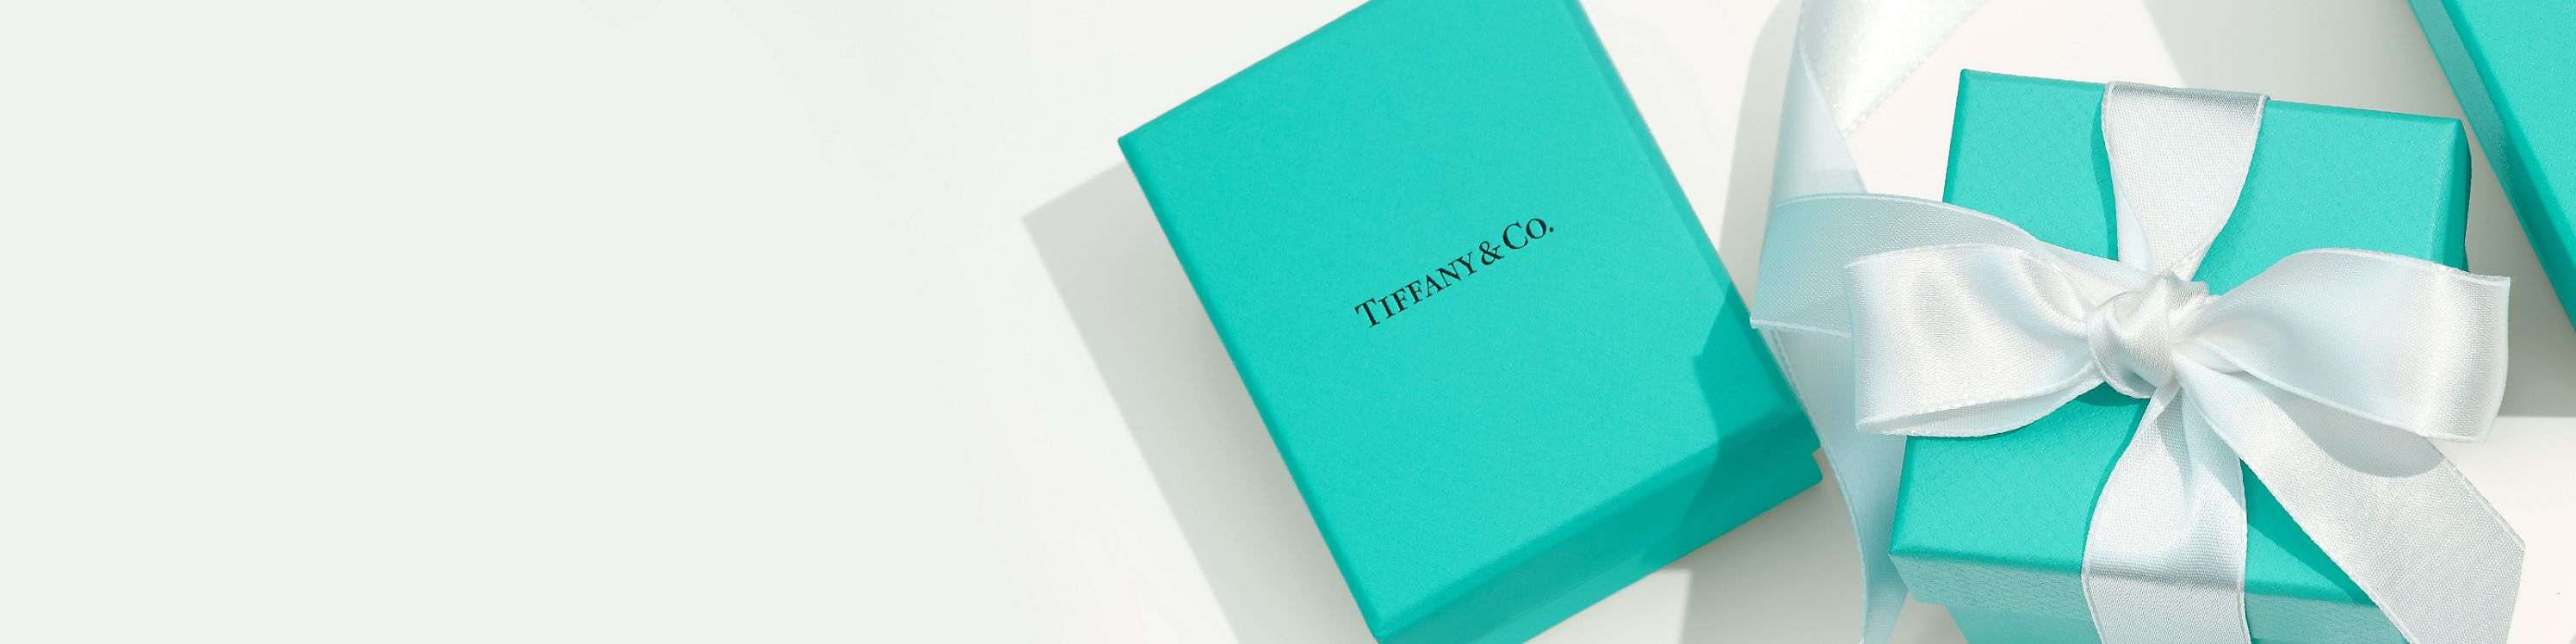 Joias mais populares Tiffany & Co.